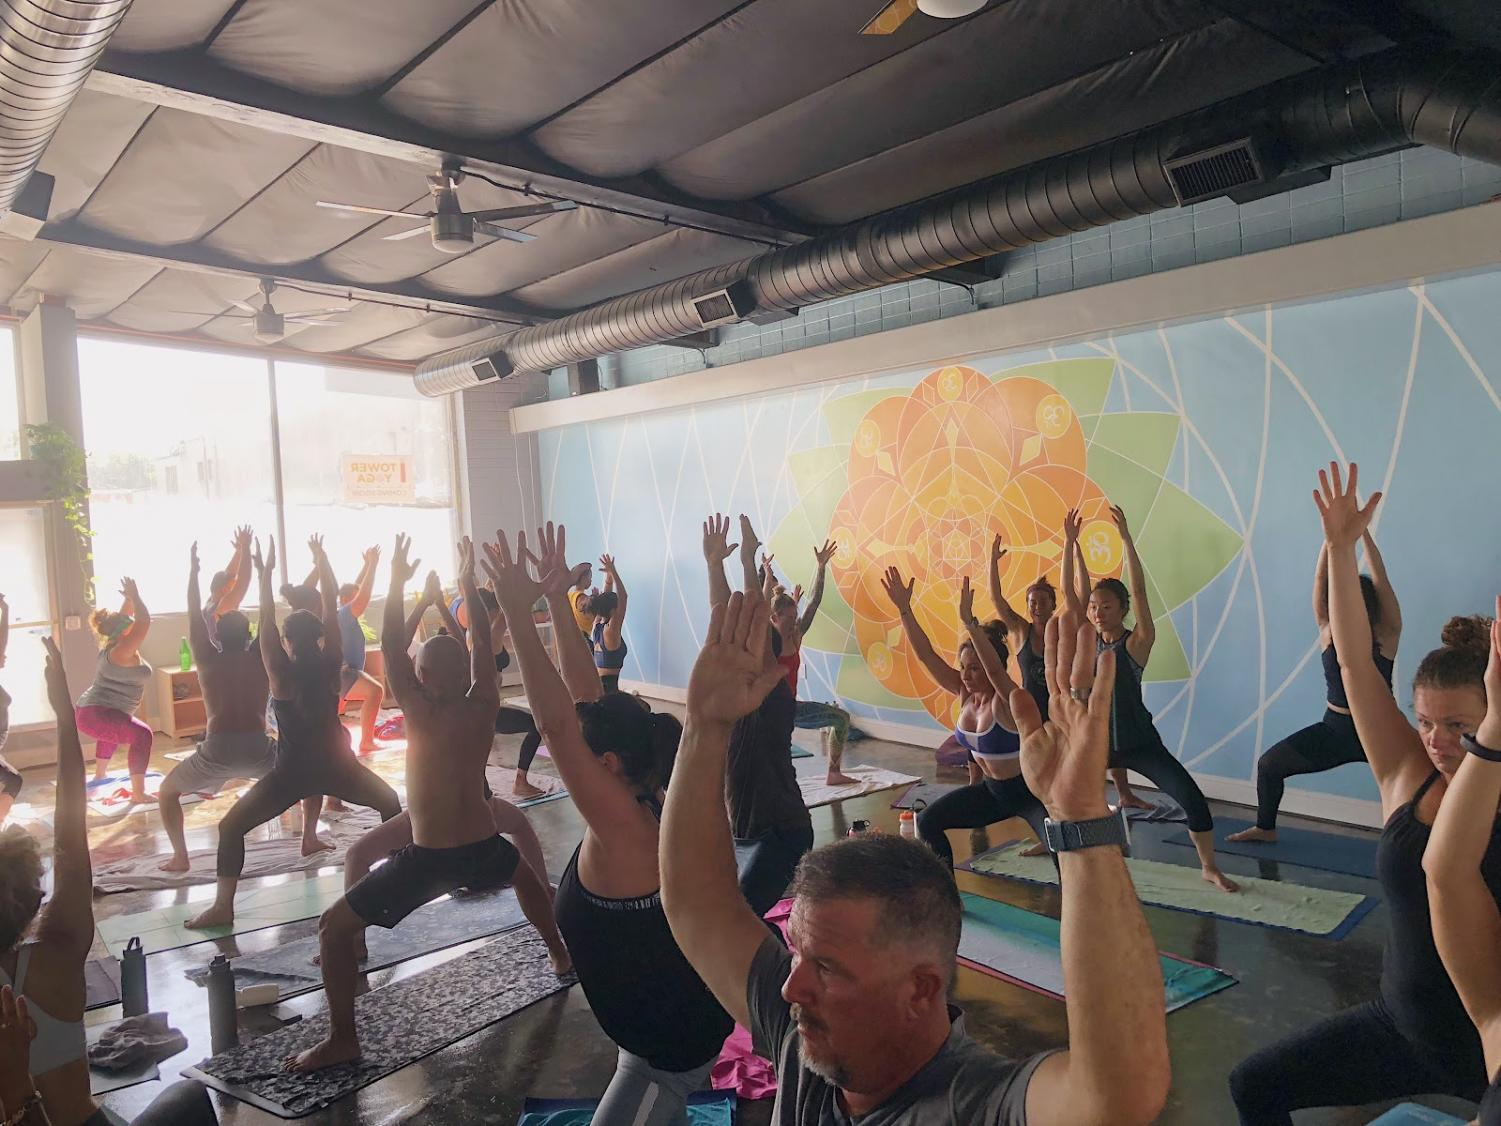 Tower Yoga patrons are 'striking a pose' in their Hot Vinyasa Flow Yoga Class on Saturday, Sept. 22, 2018.